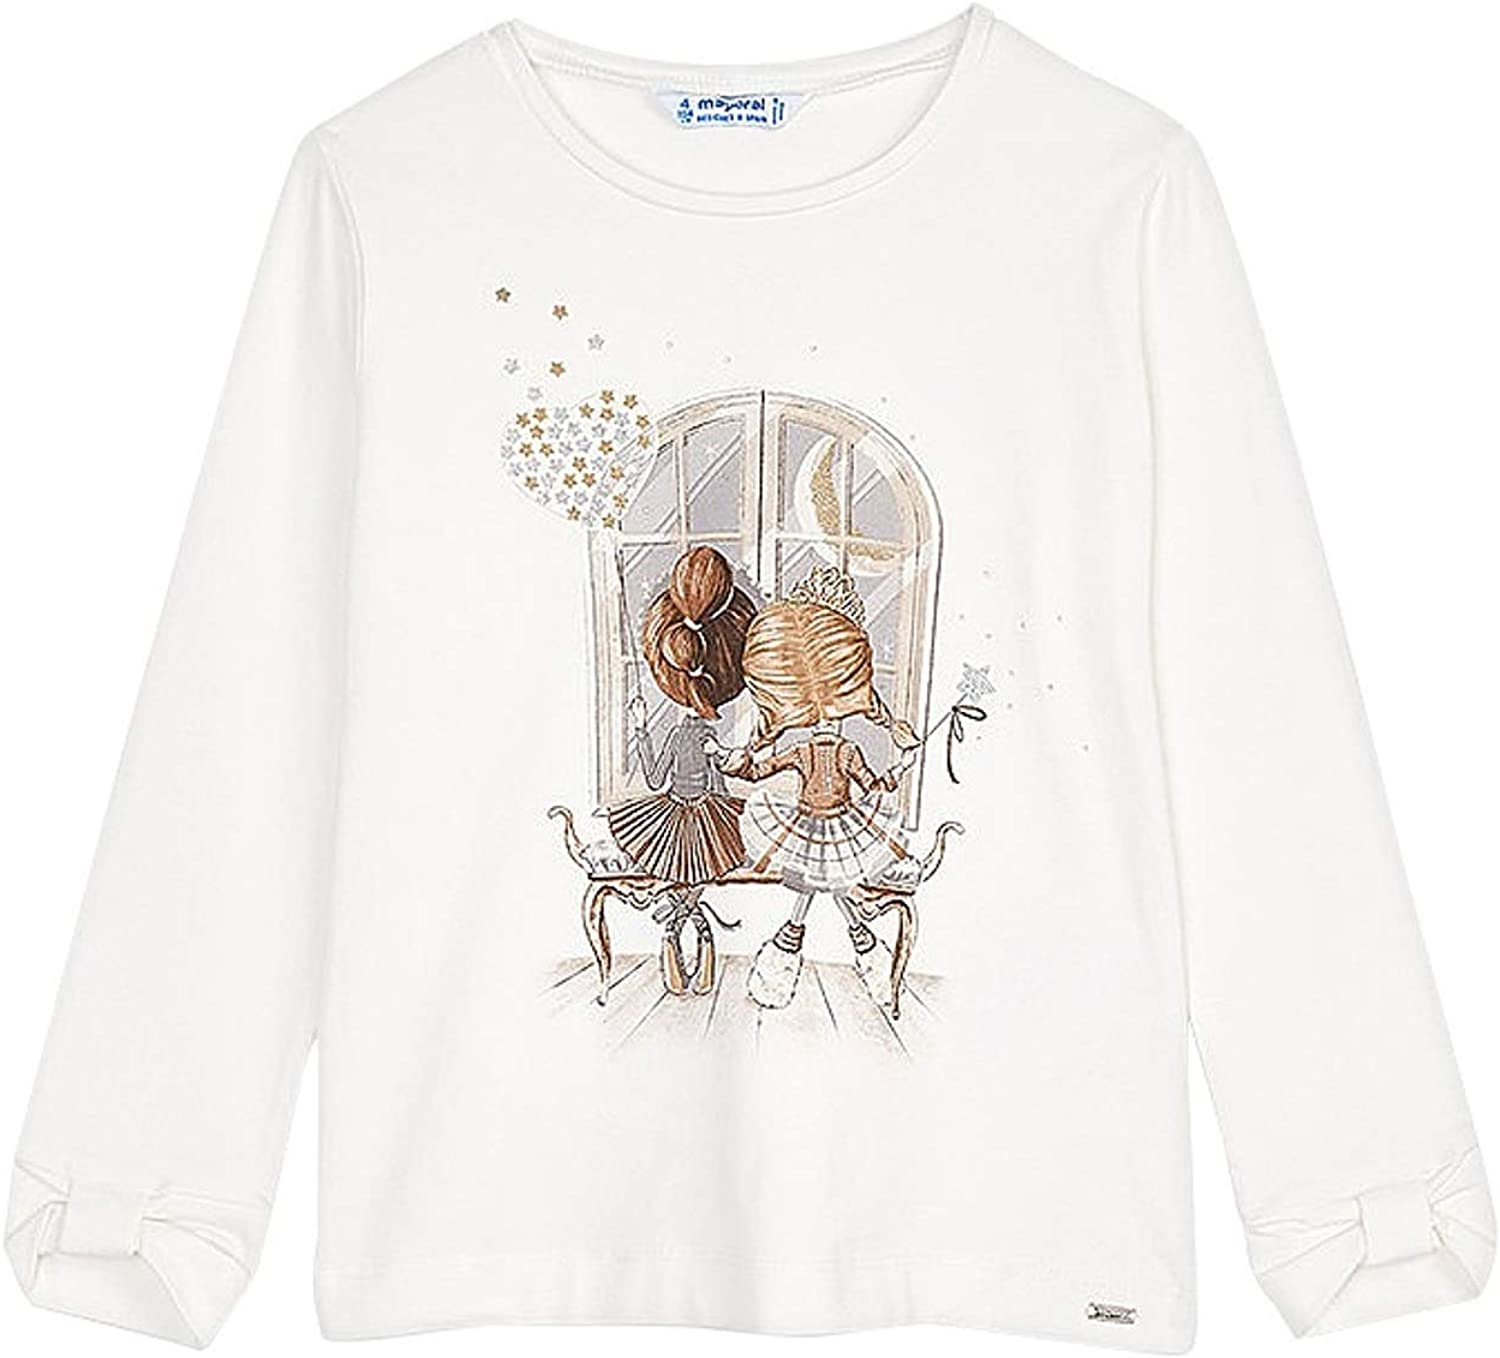 Mayoral - L/s t-Shirt for Girls - 4067, Gray